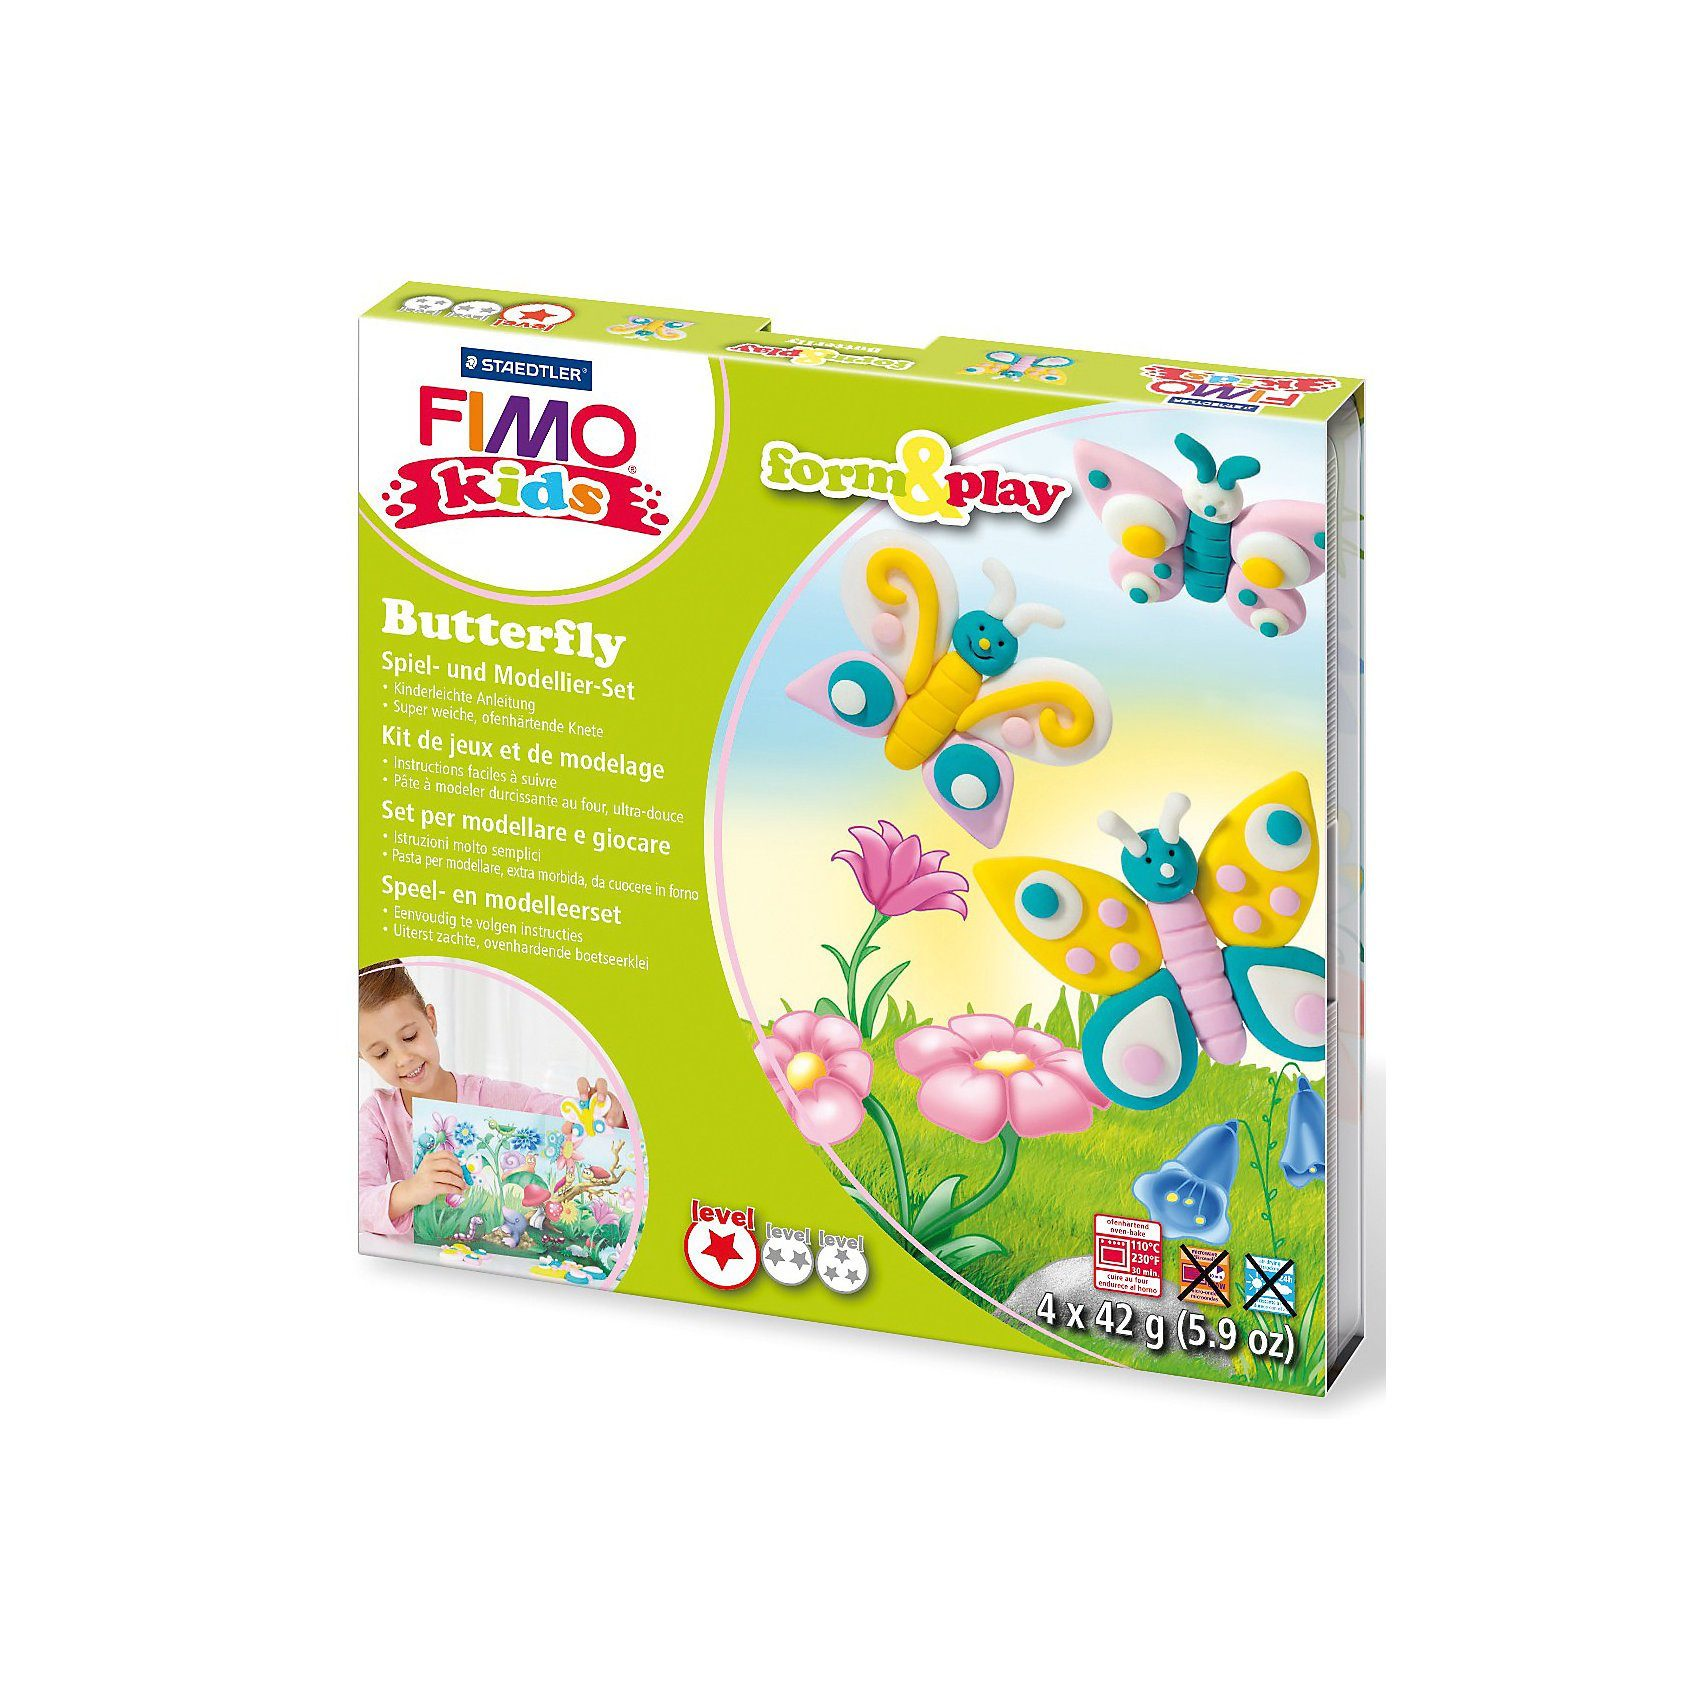 FIMO kids Form & Play Butterfly